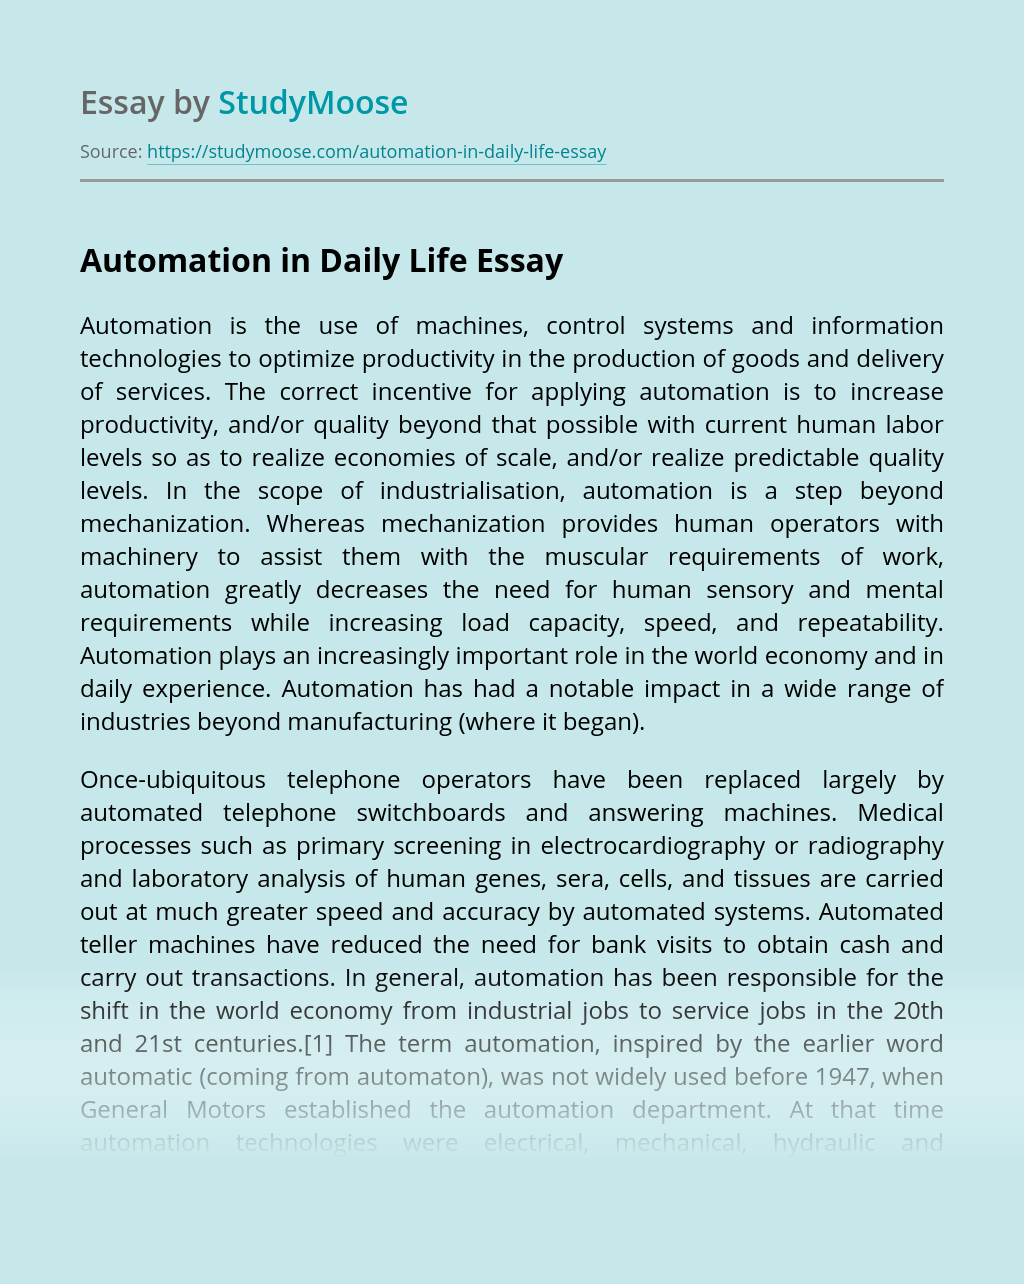 Automation in Daily Life